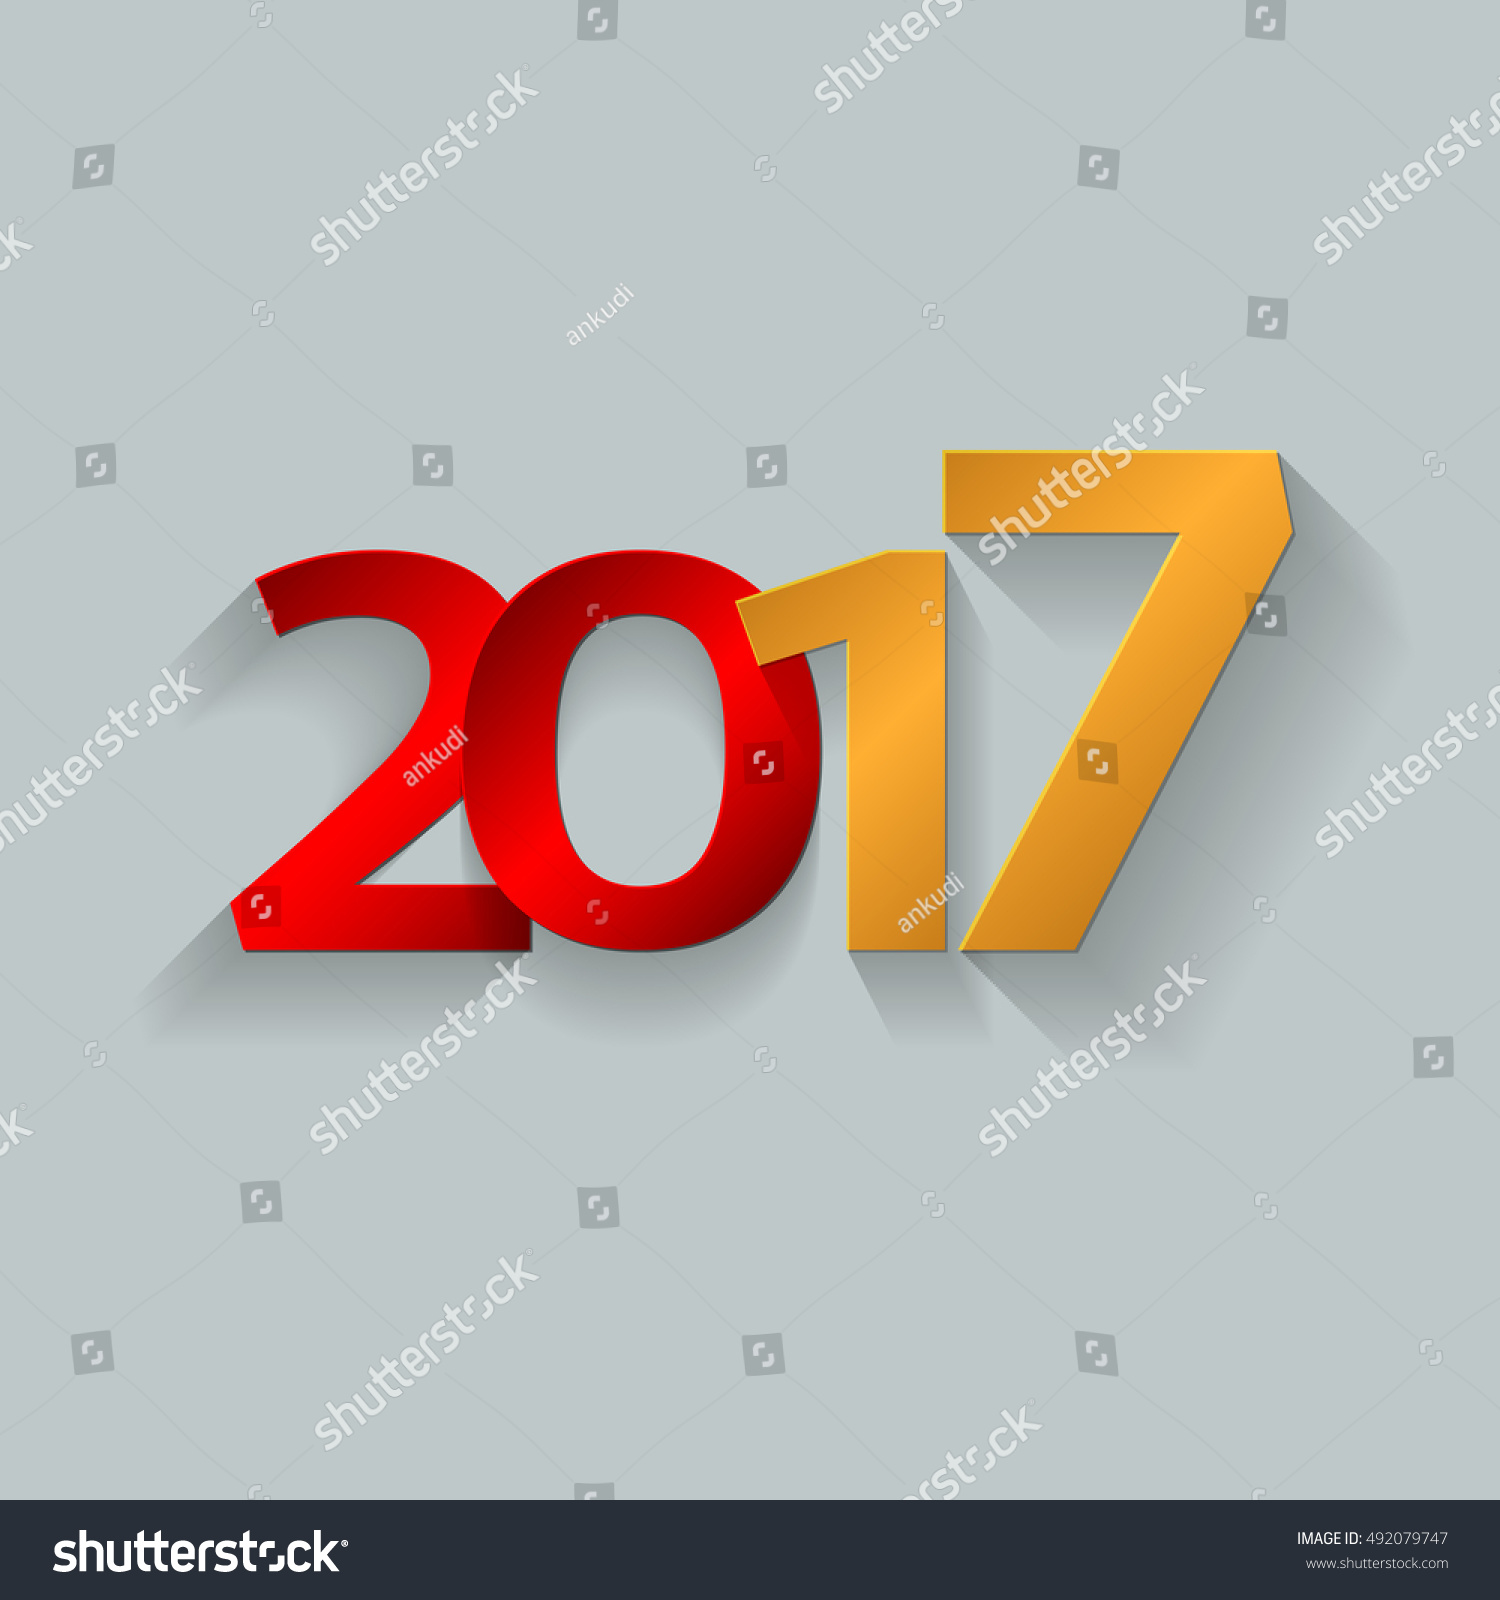 Happy new year 2017 decoration text stock vector 492079747 for A text decoration